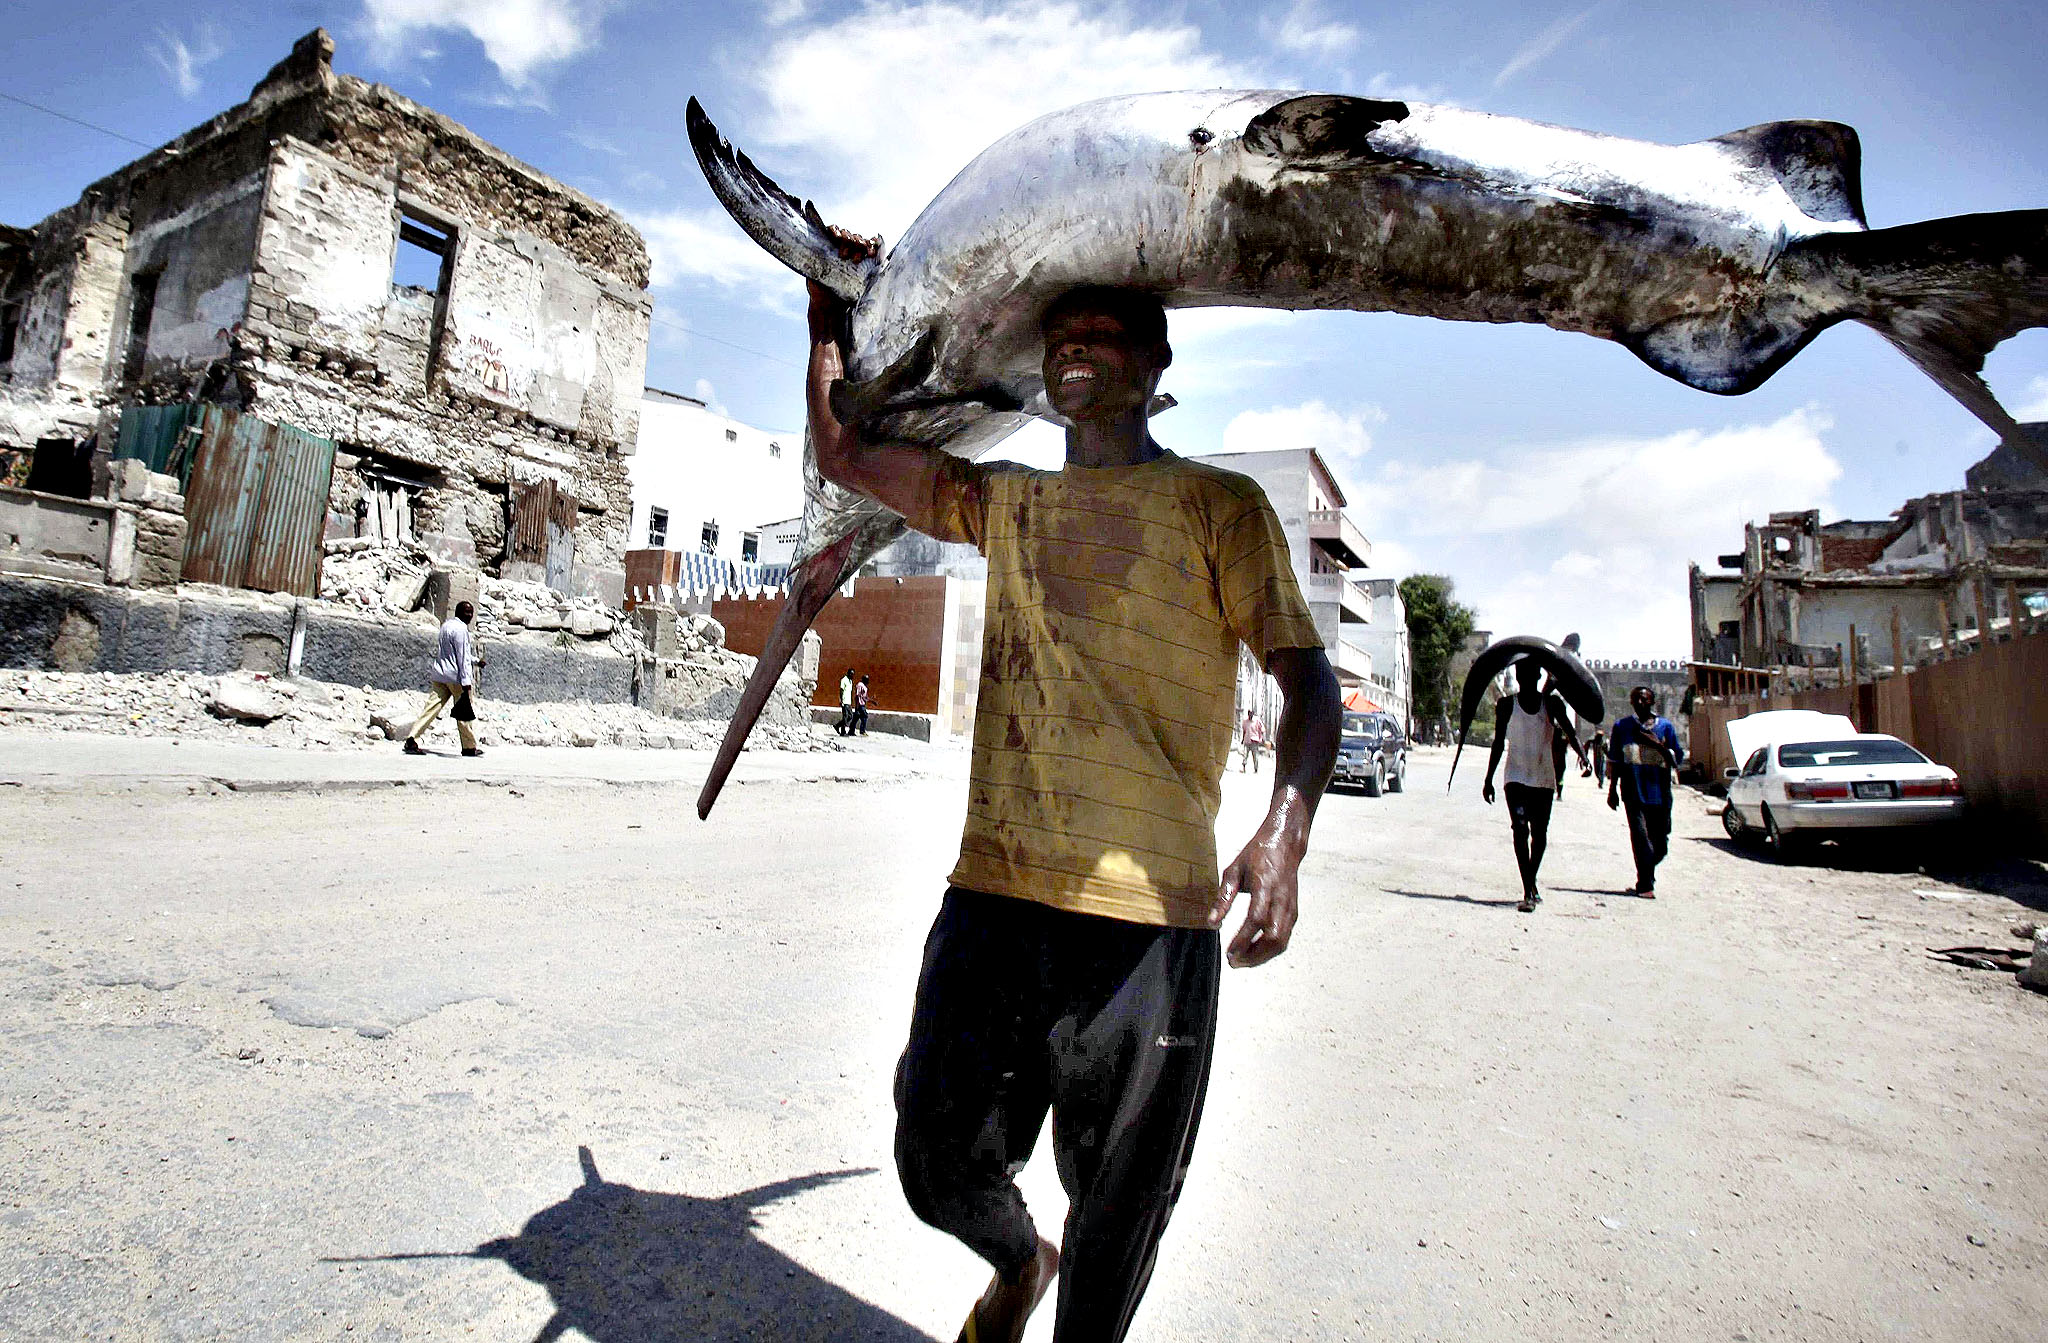 A fisherman carries a swordfish on his head from the Indian Ocean waters to the market in Somalia's capital Mogadishu March 31, 2014.